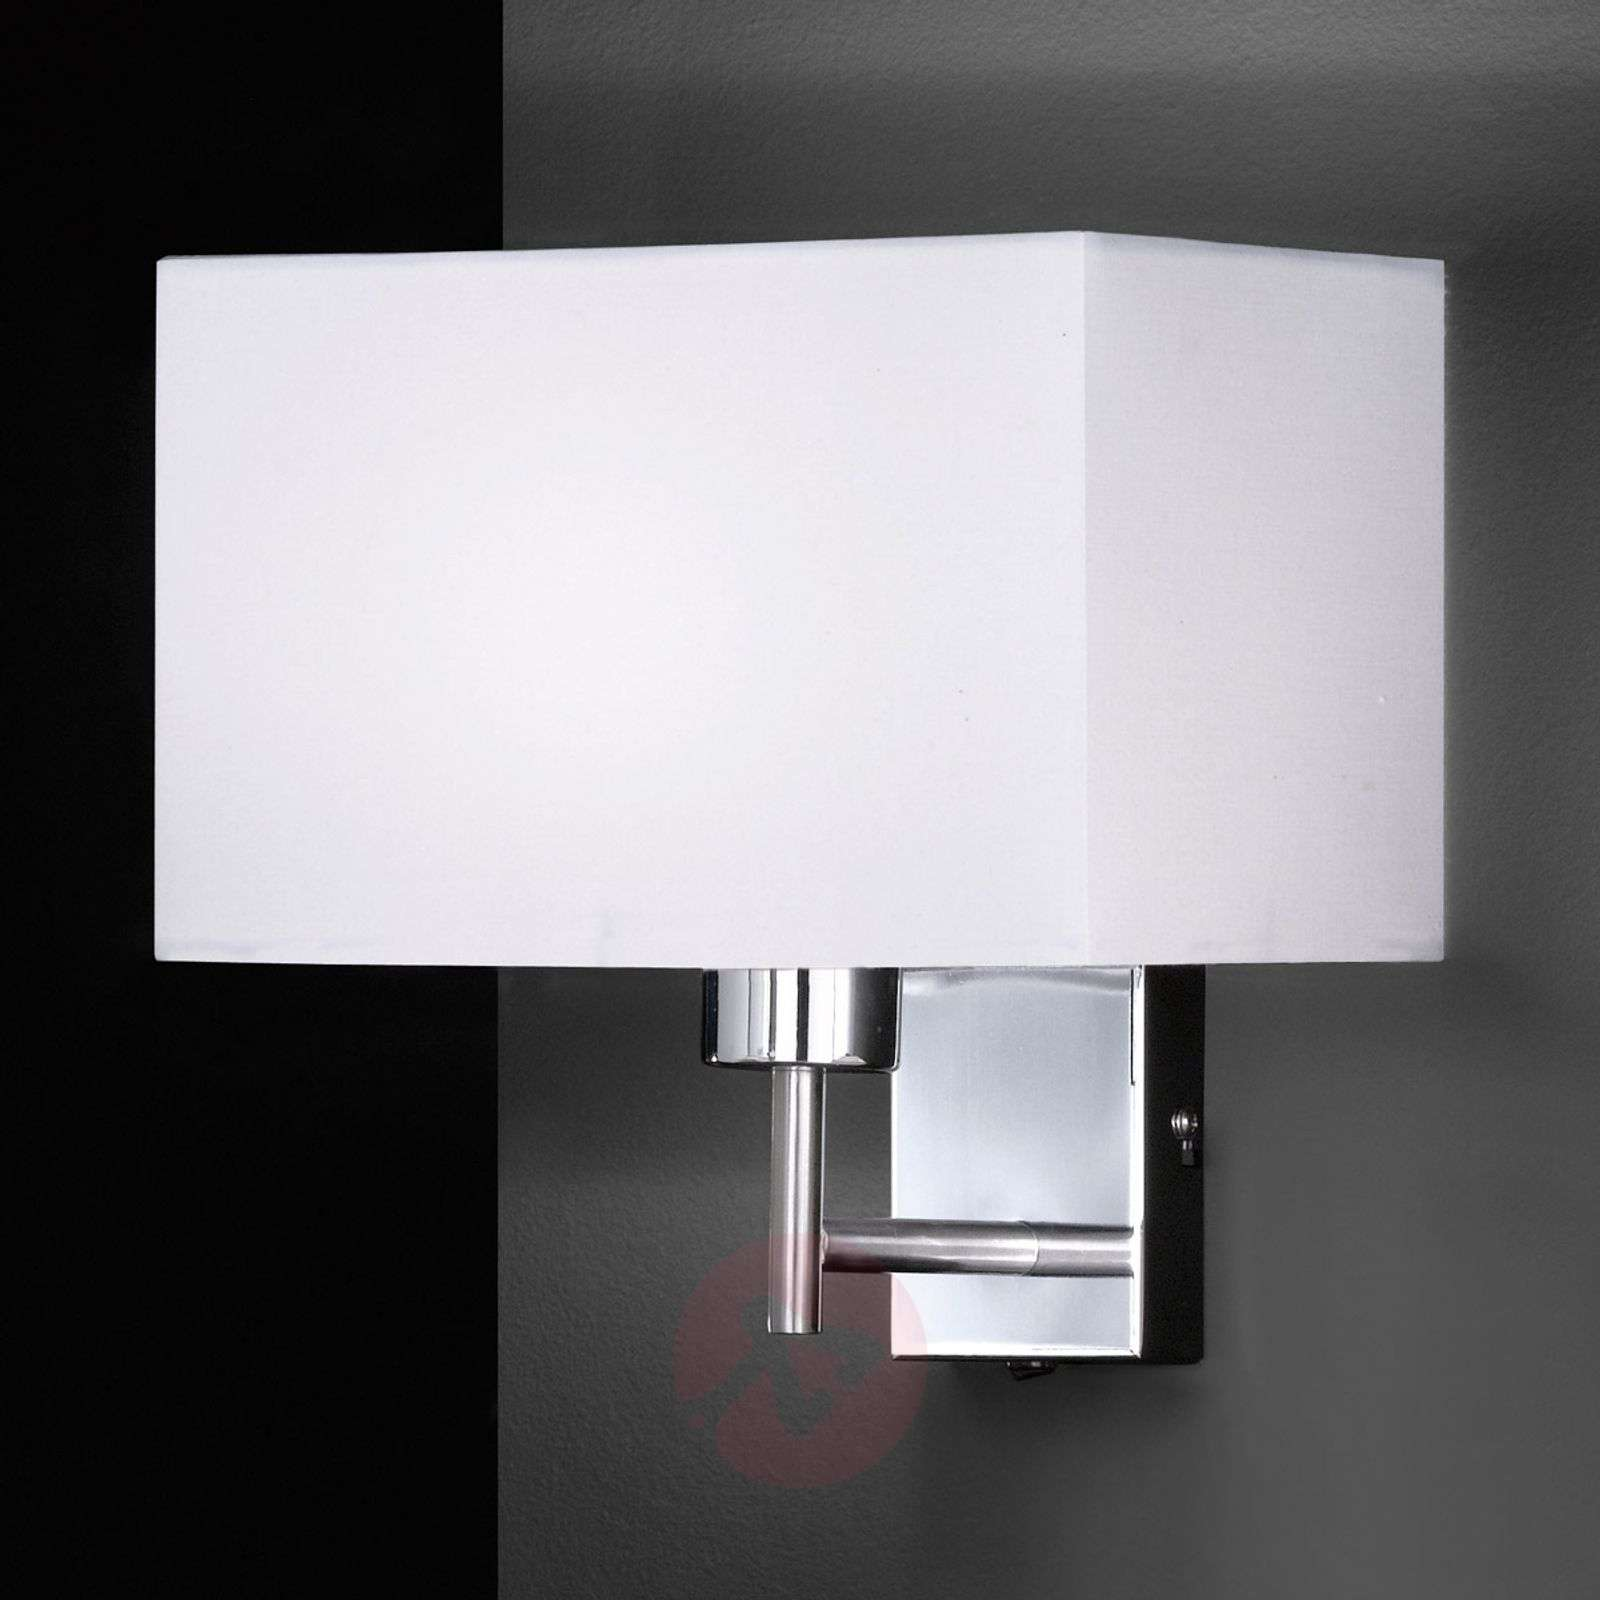 Tastefully designed wall light Kempten-4581169-01